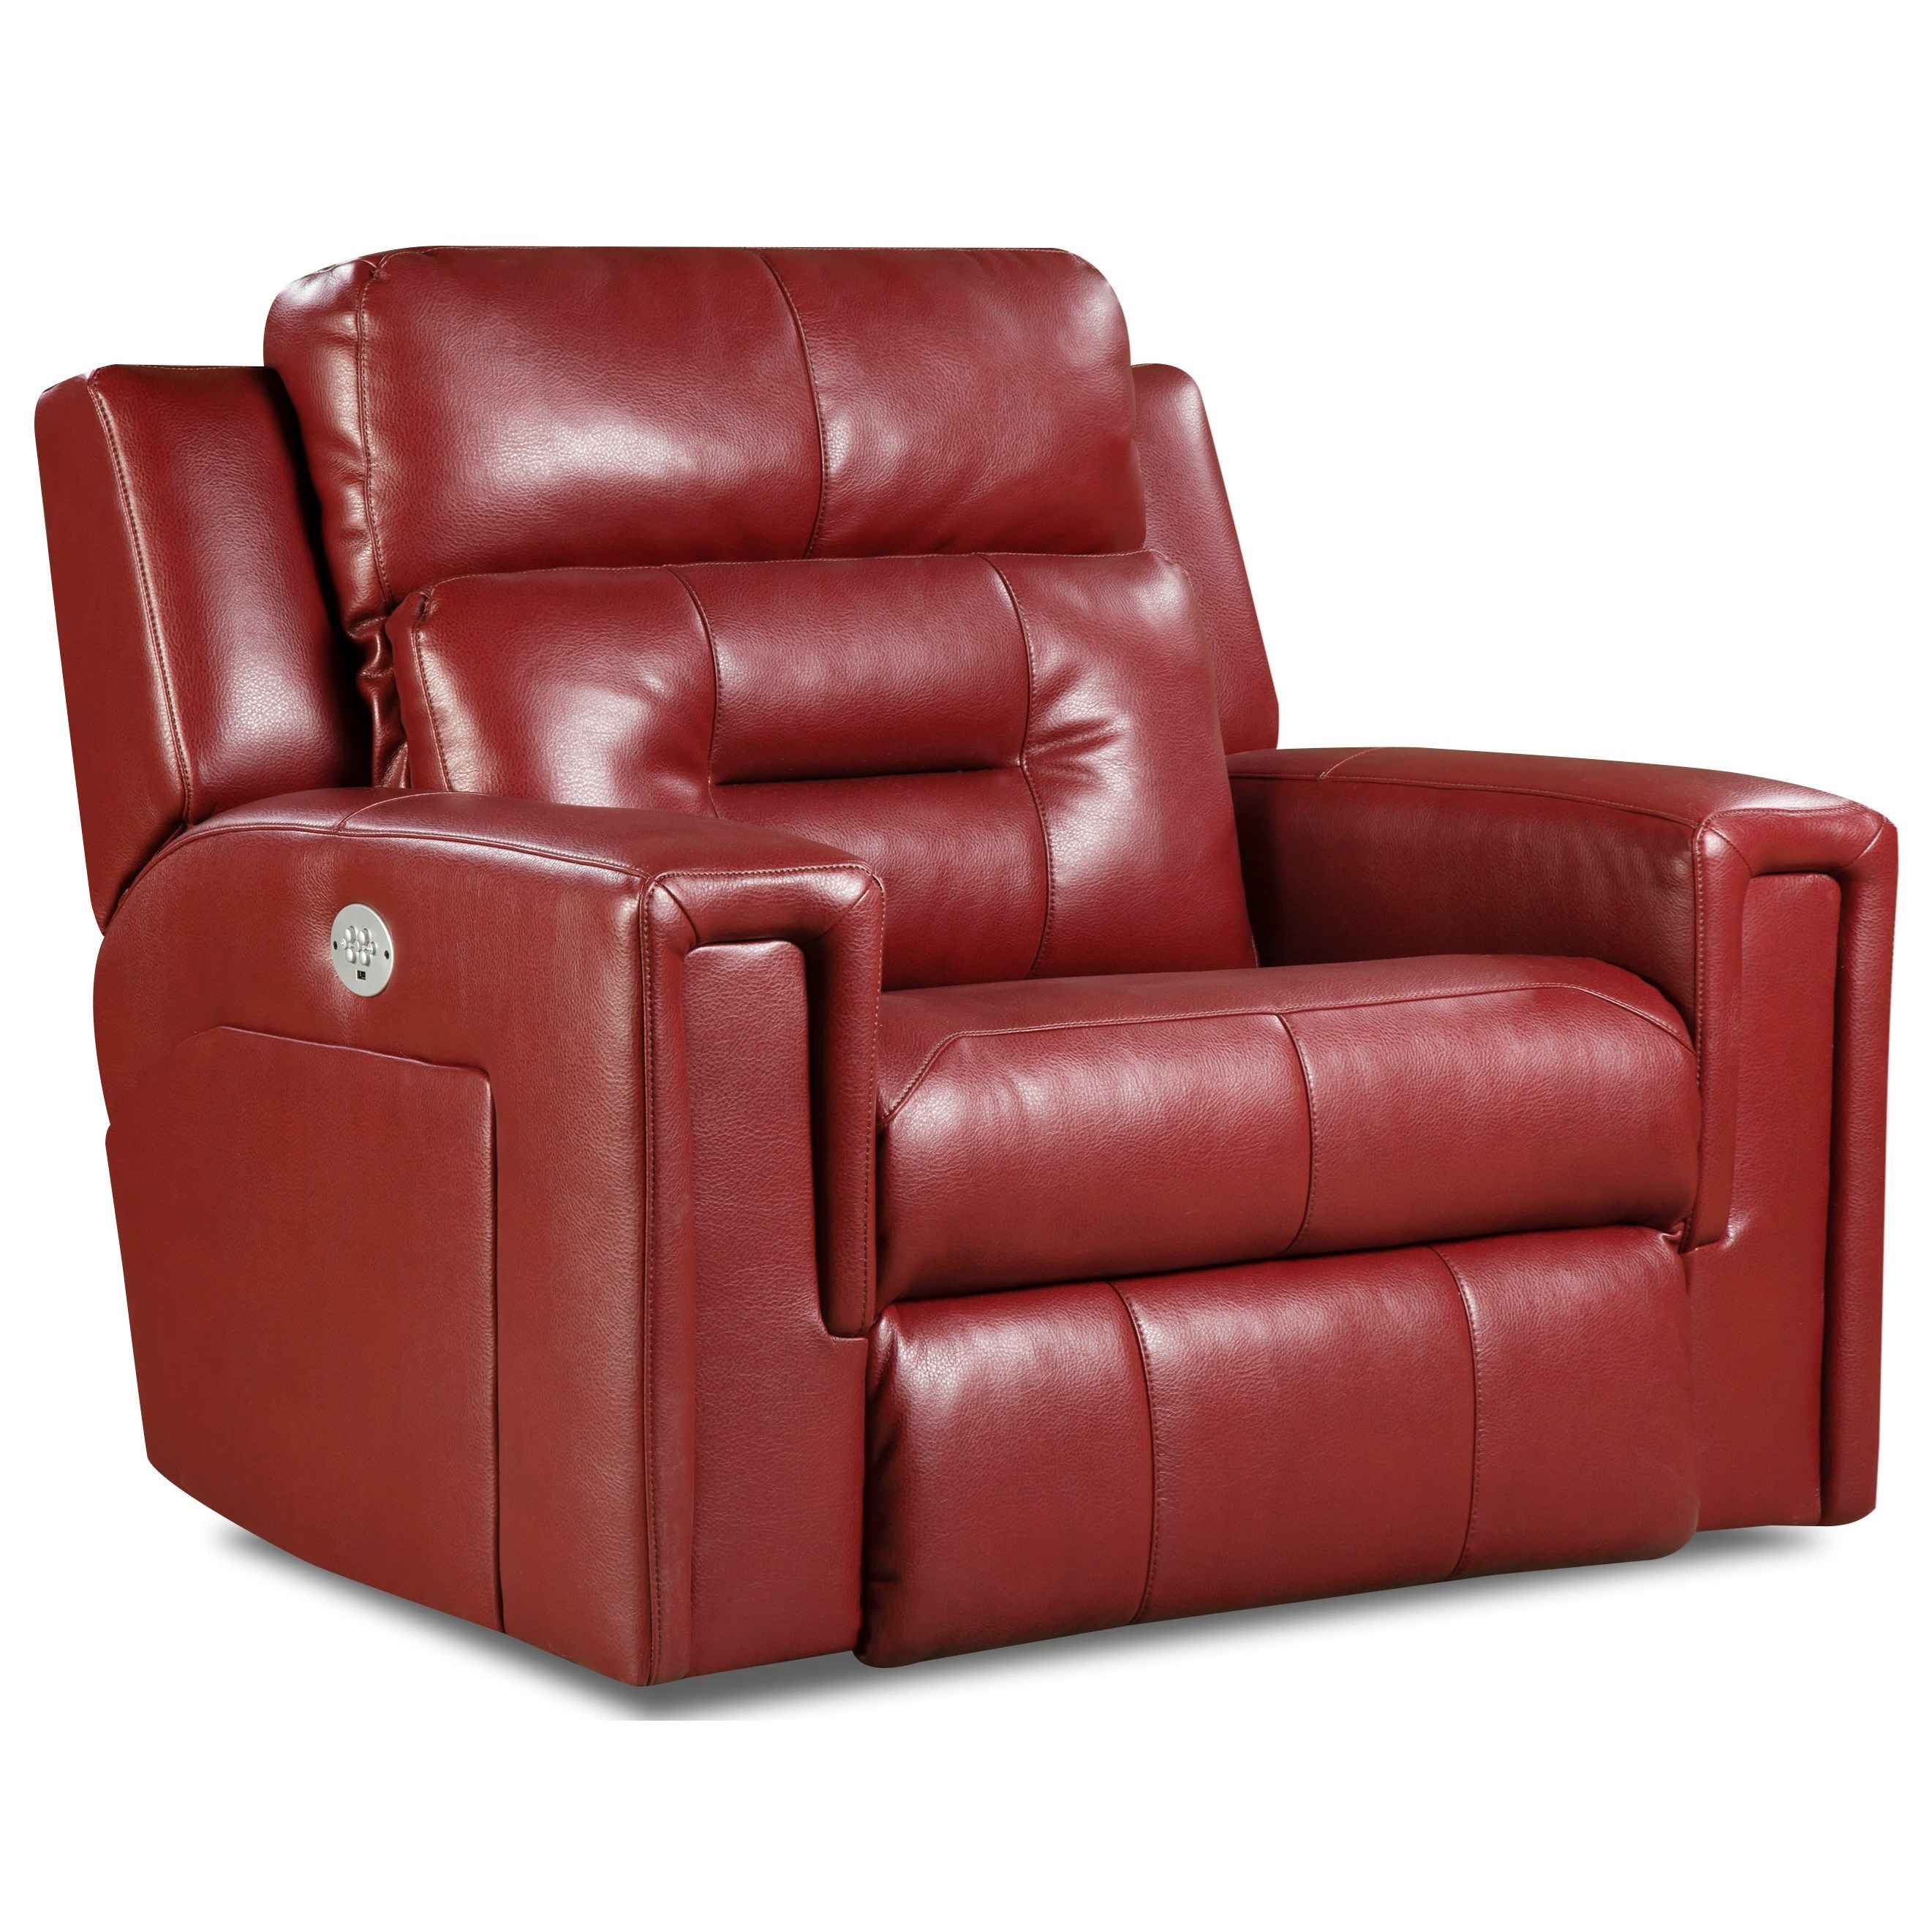 Excel Power Reclining Chair and a Half by Southern Motion at Rooms and Rest